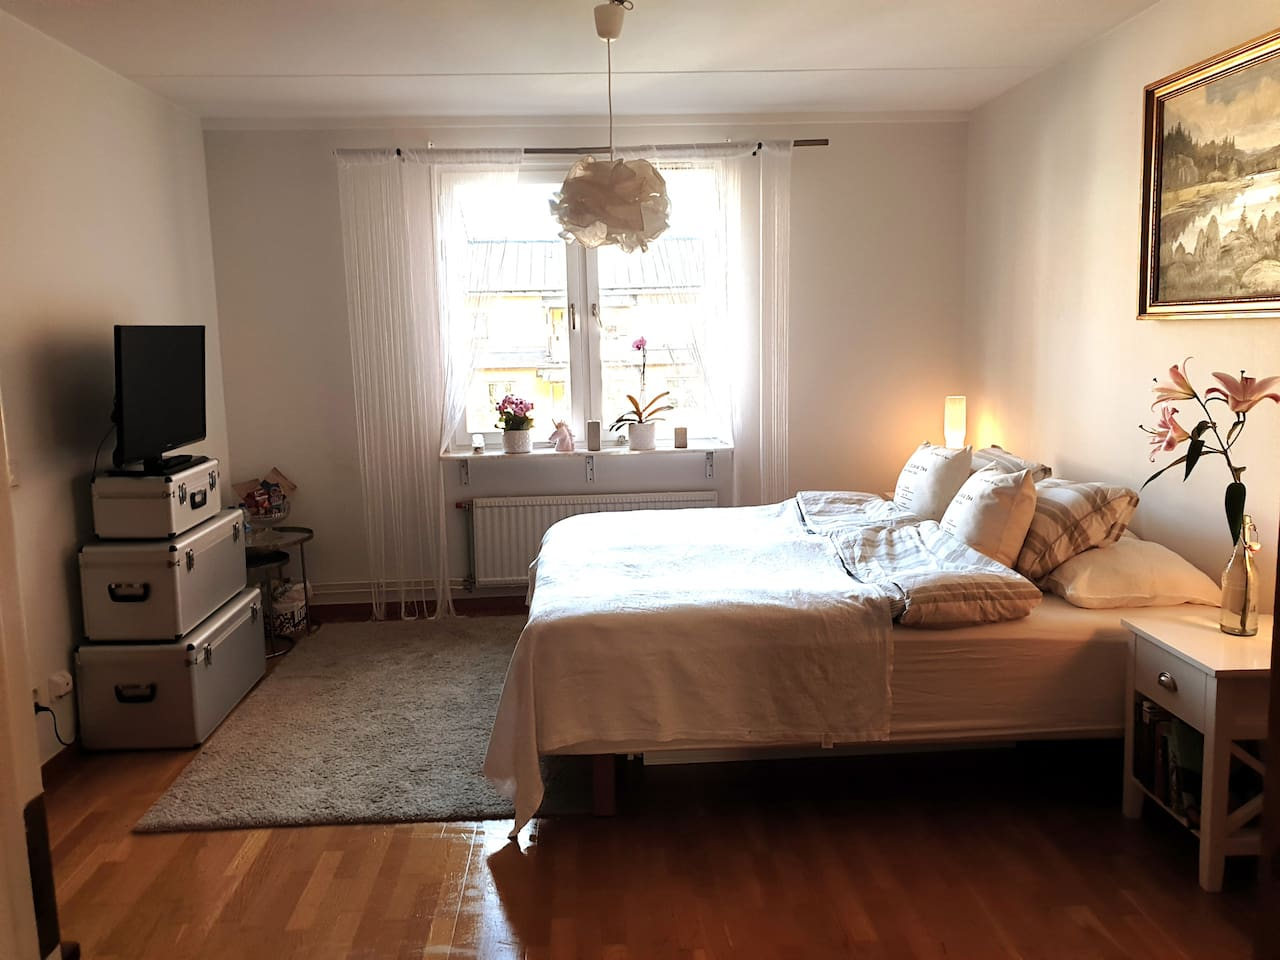 A bedroom for 2 right in the city center